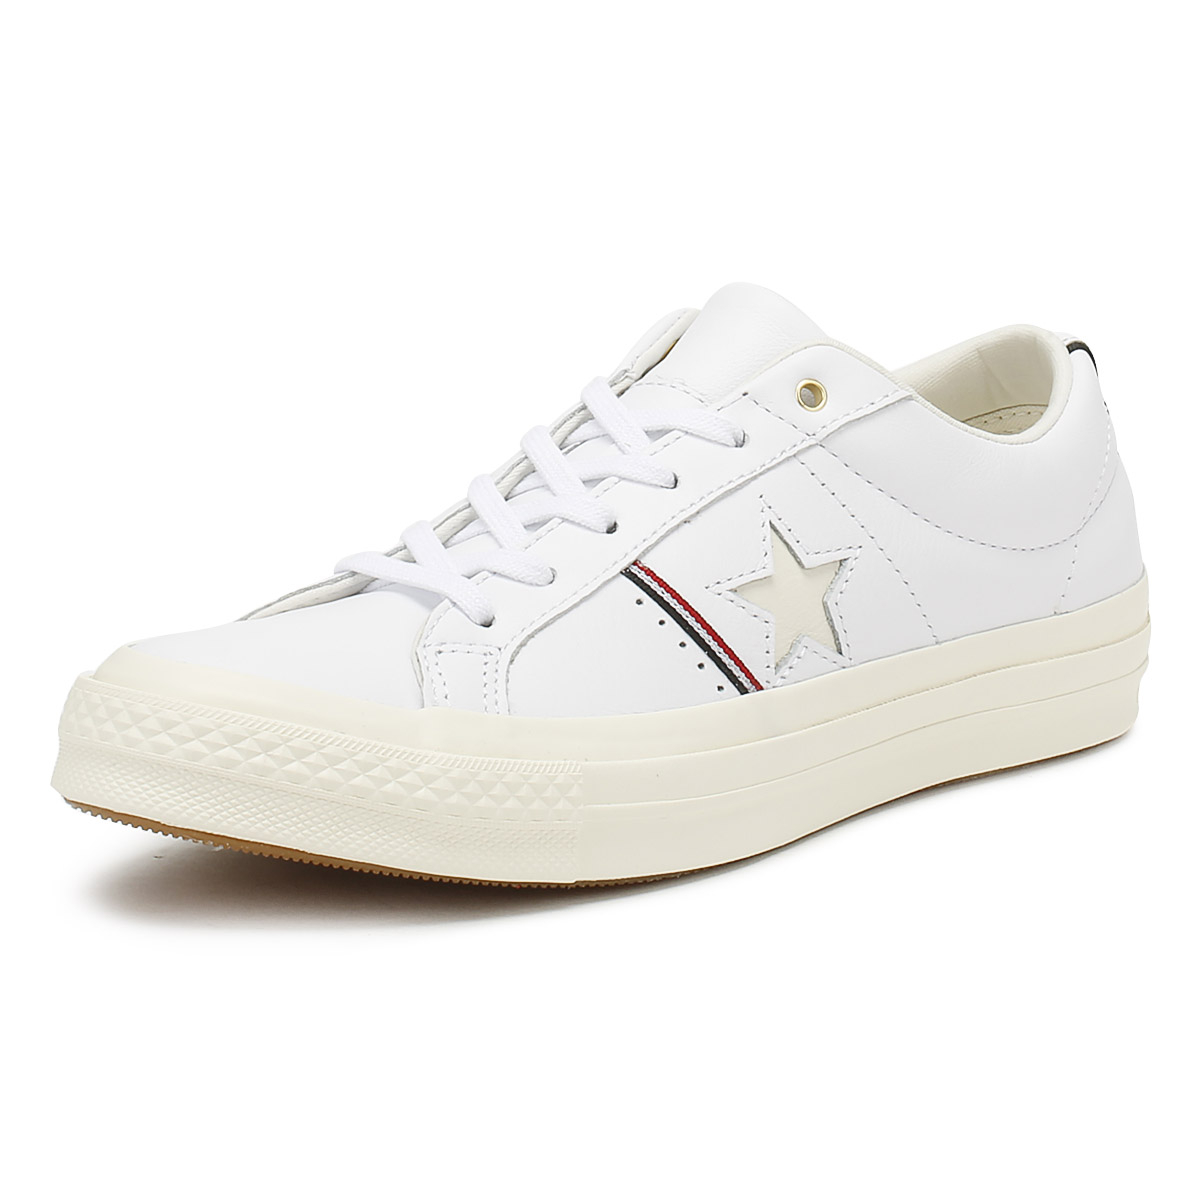 85cec5963ea Details about Converse One Star Womens White Ox Trainers Premium Leather  Lace Up Shoes